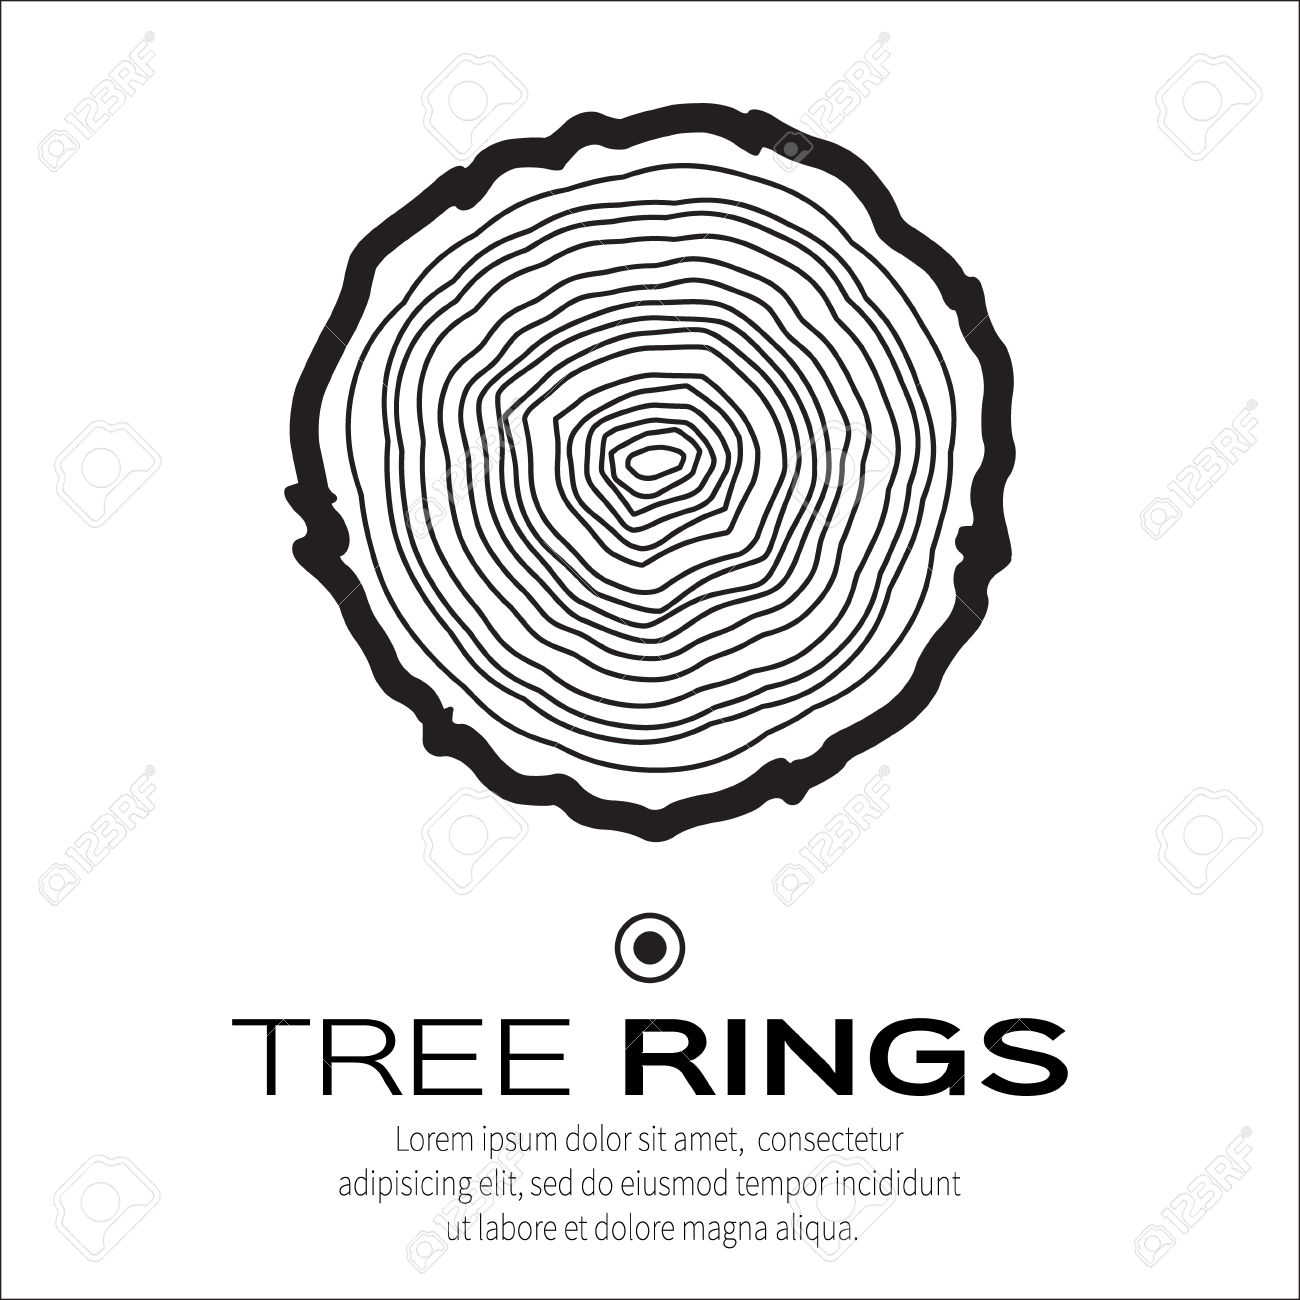 6,471 Year Ring Stock Vector Illustration And Royalty Free Year.